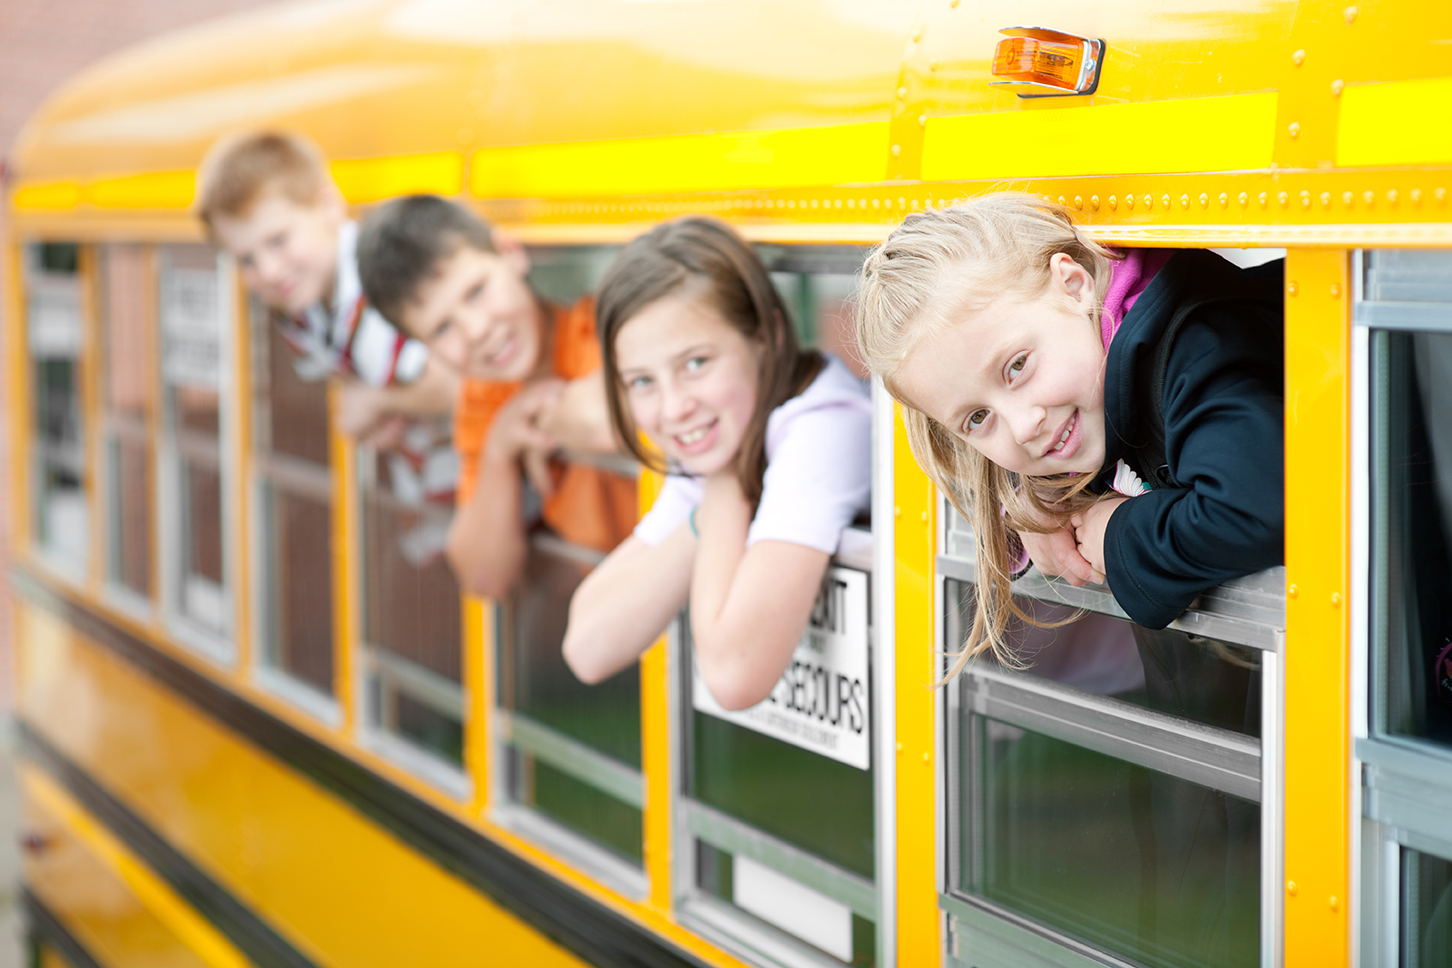 School children lean out of school bus windows. (stock image)